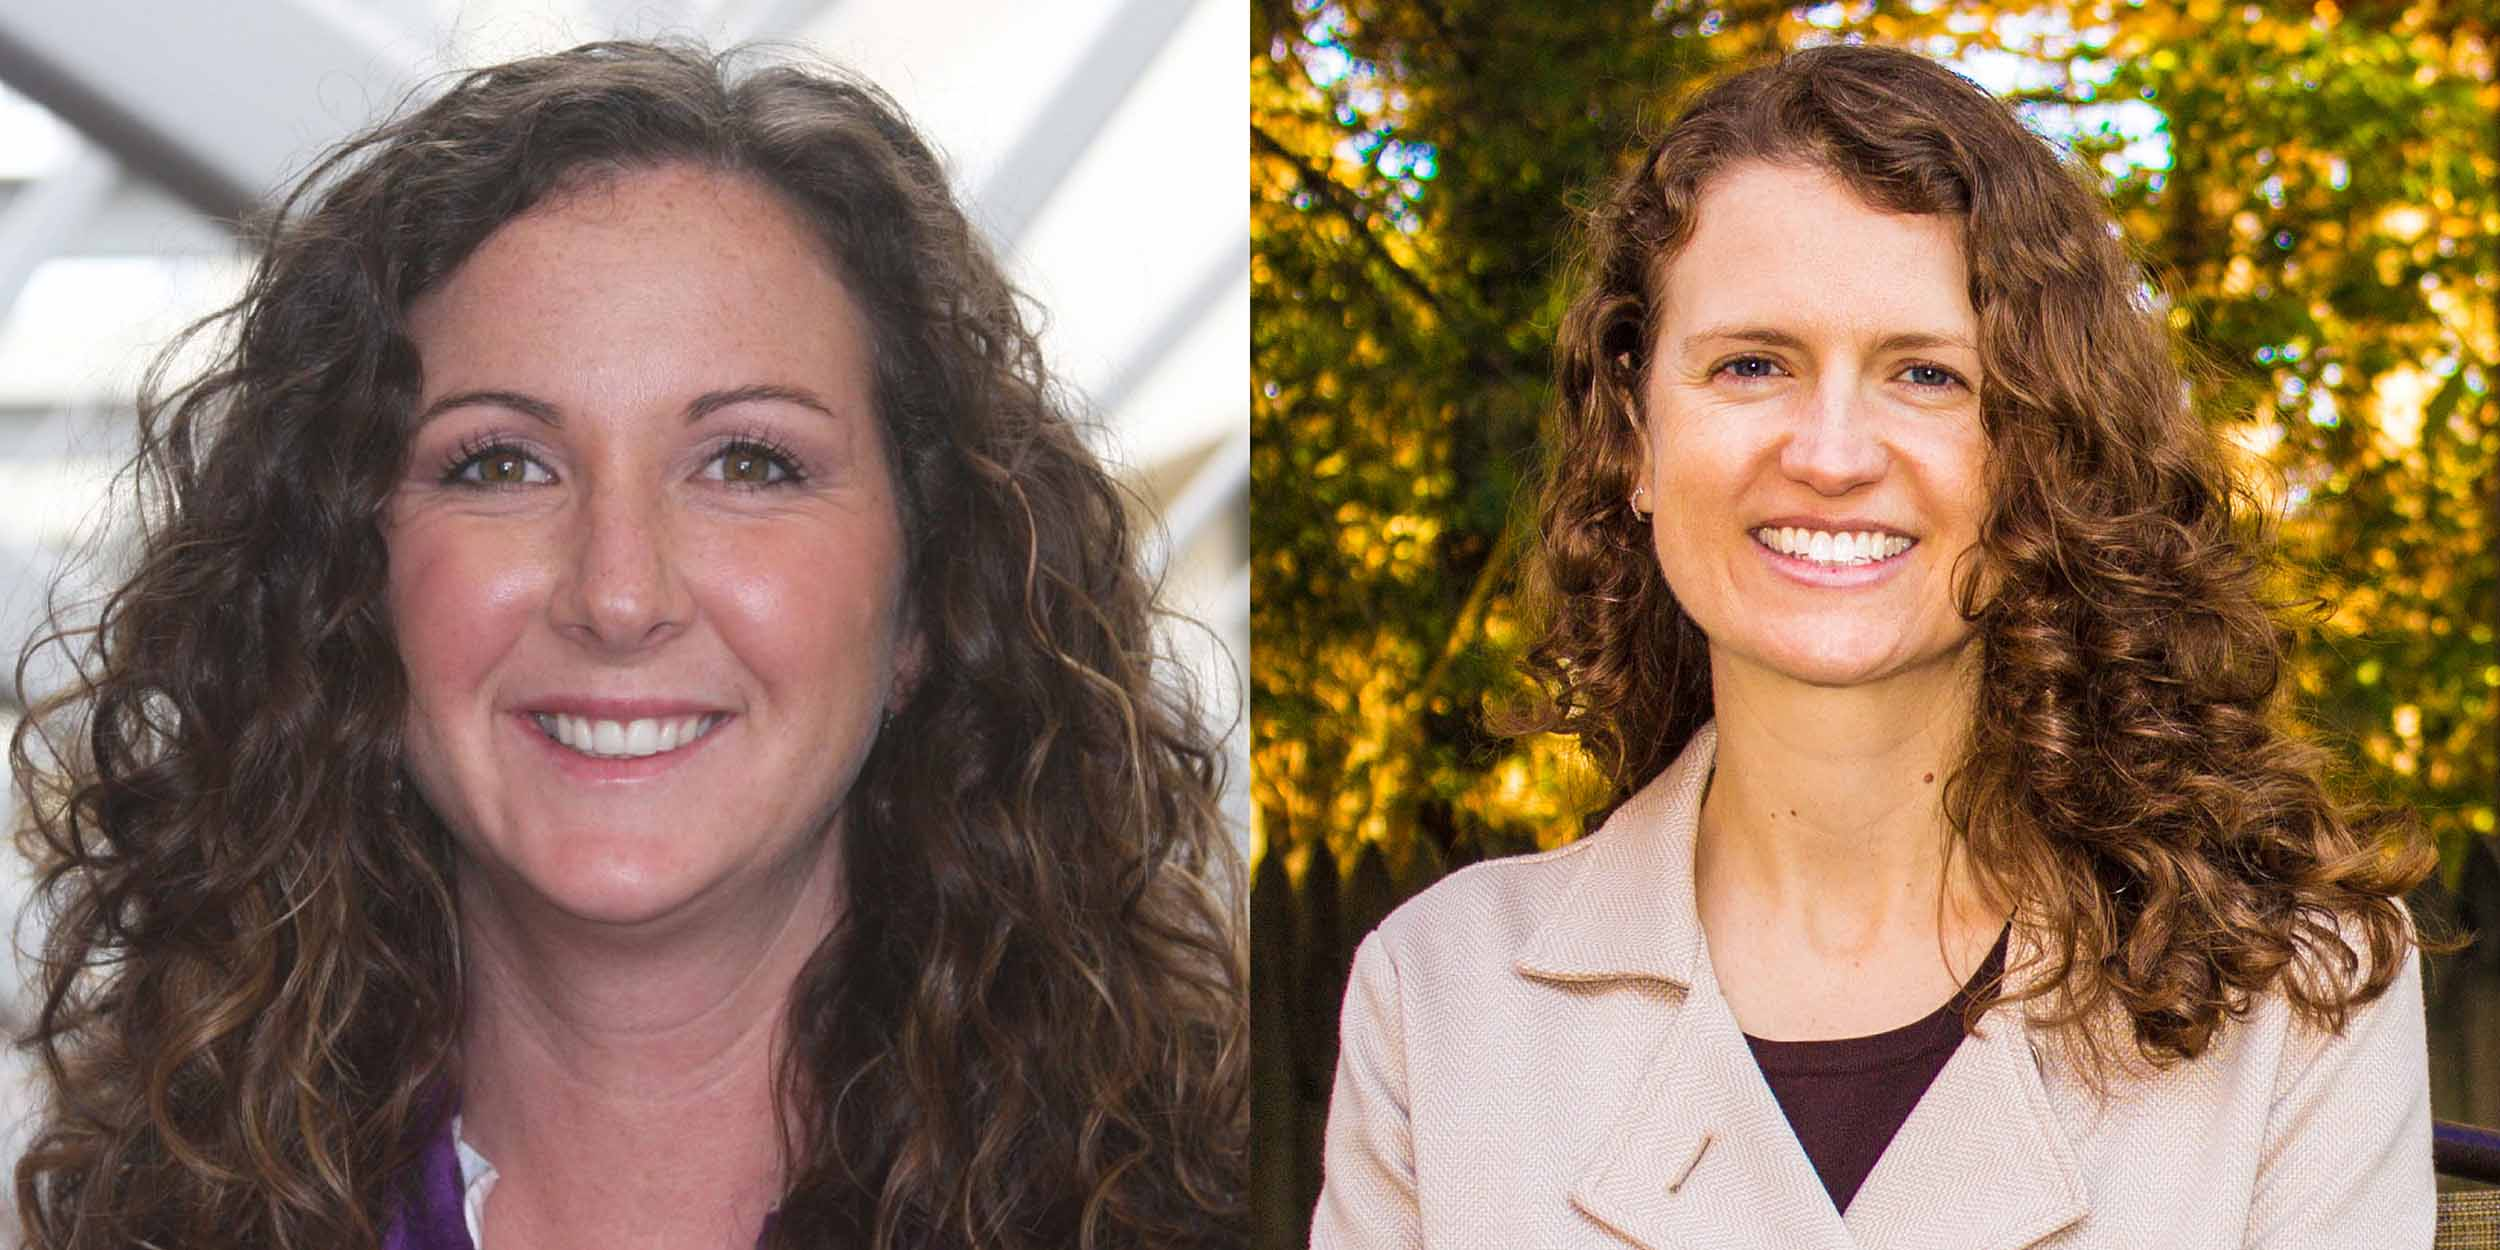 Dr. Hannah Dostal (left), University of Connecticut, and Dr. Kimberly Wolbers (right), University of Tennessee